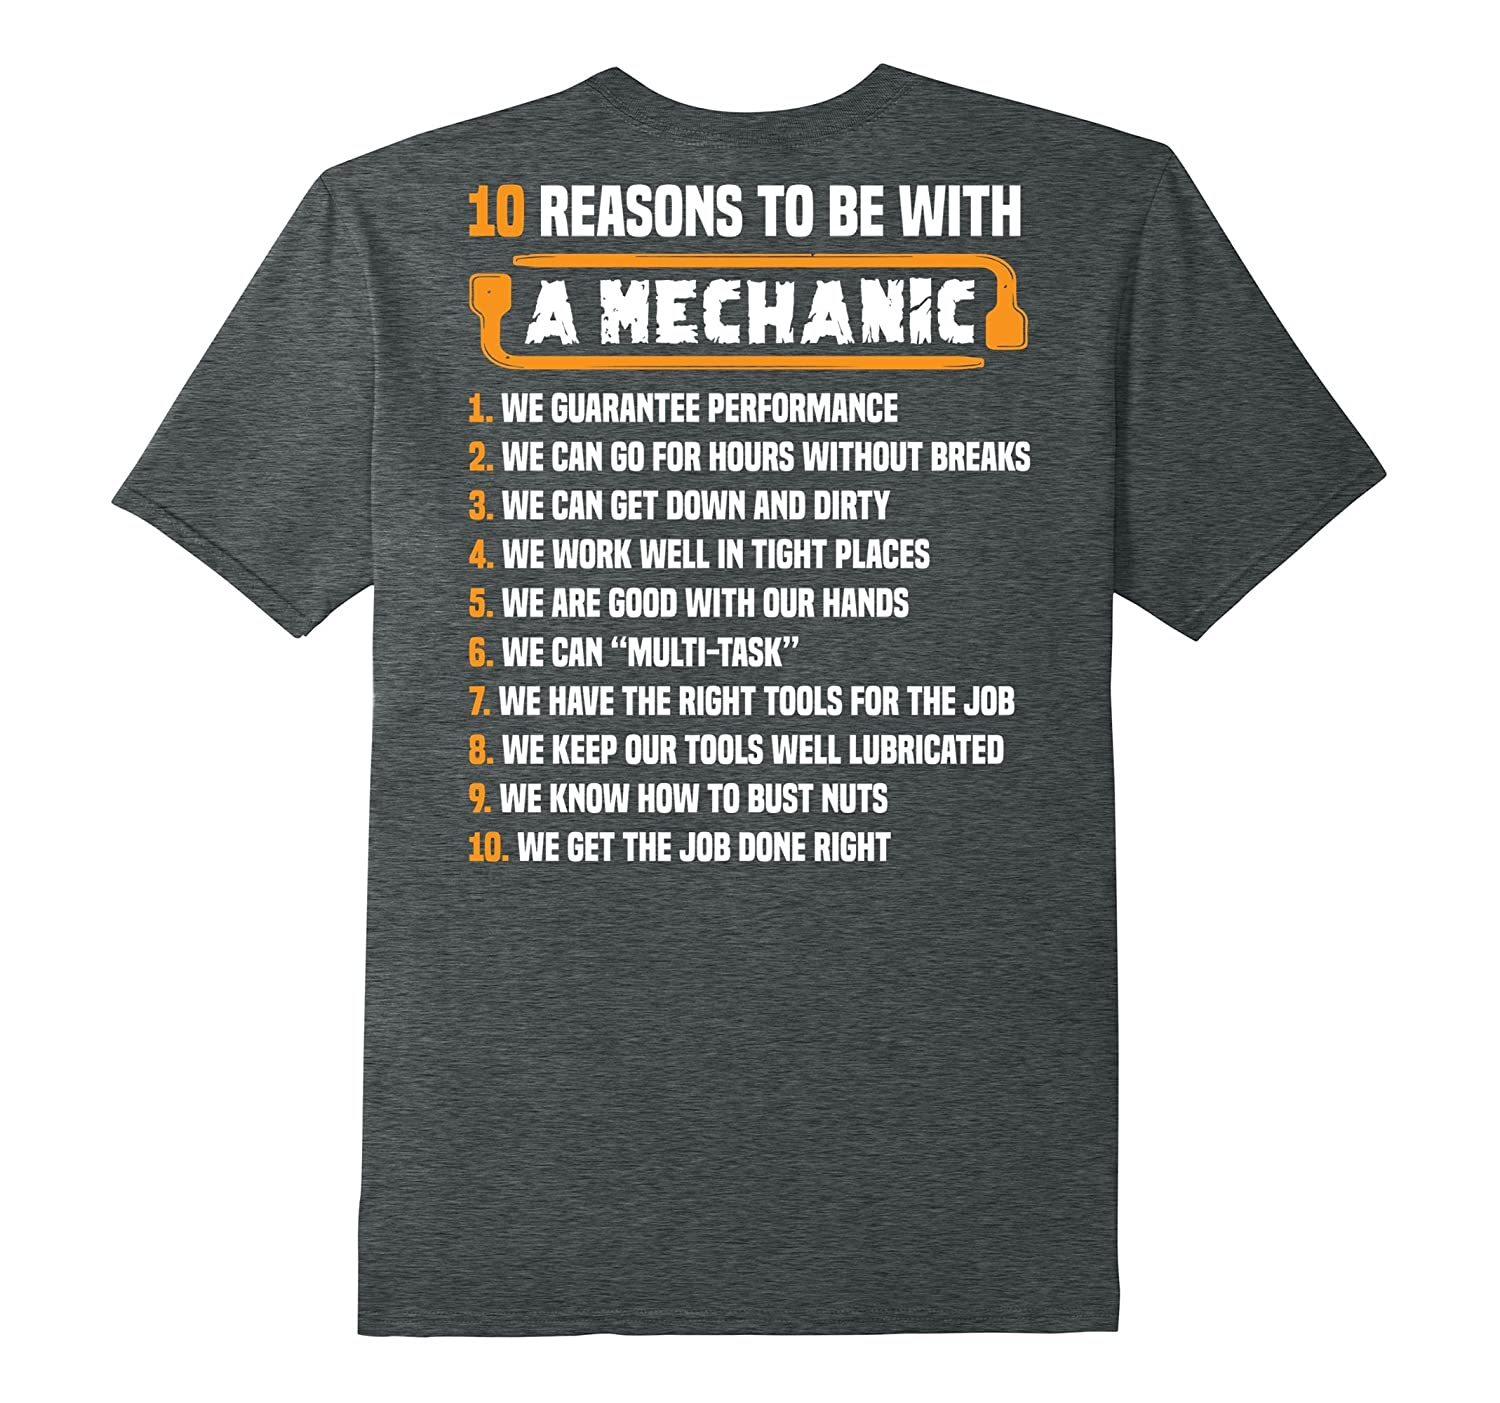 10 Reasons To Be With Mechanic T-Shirt - Mechanic Funny-PL